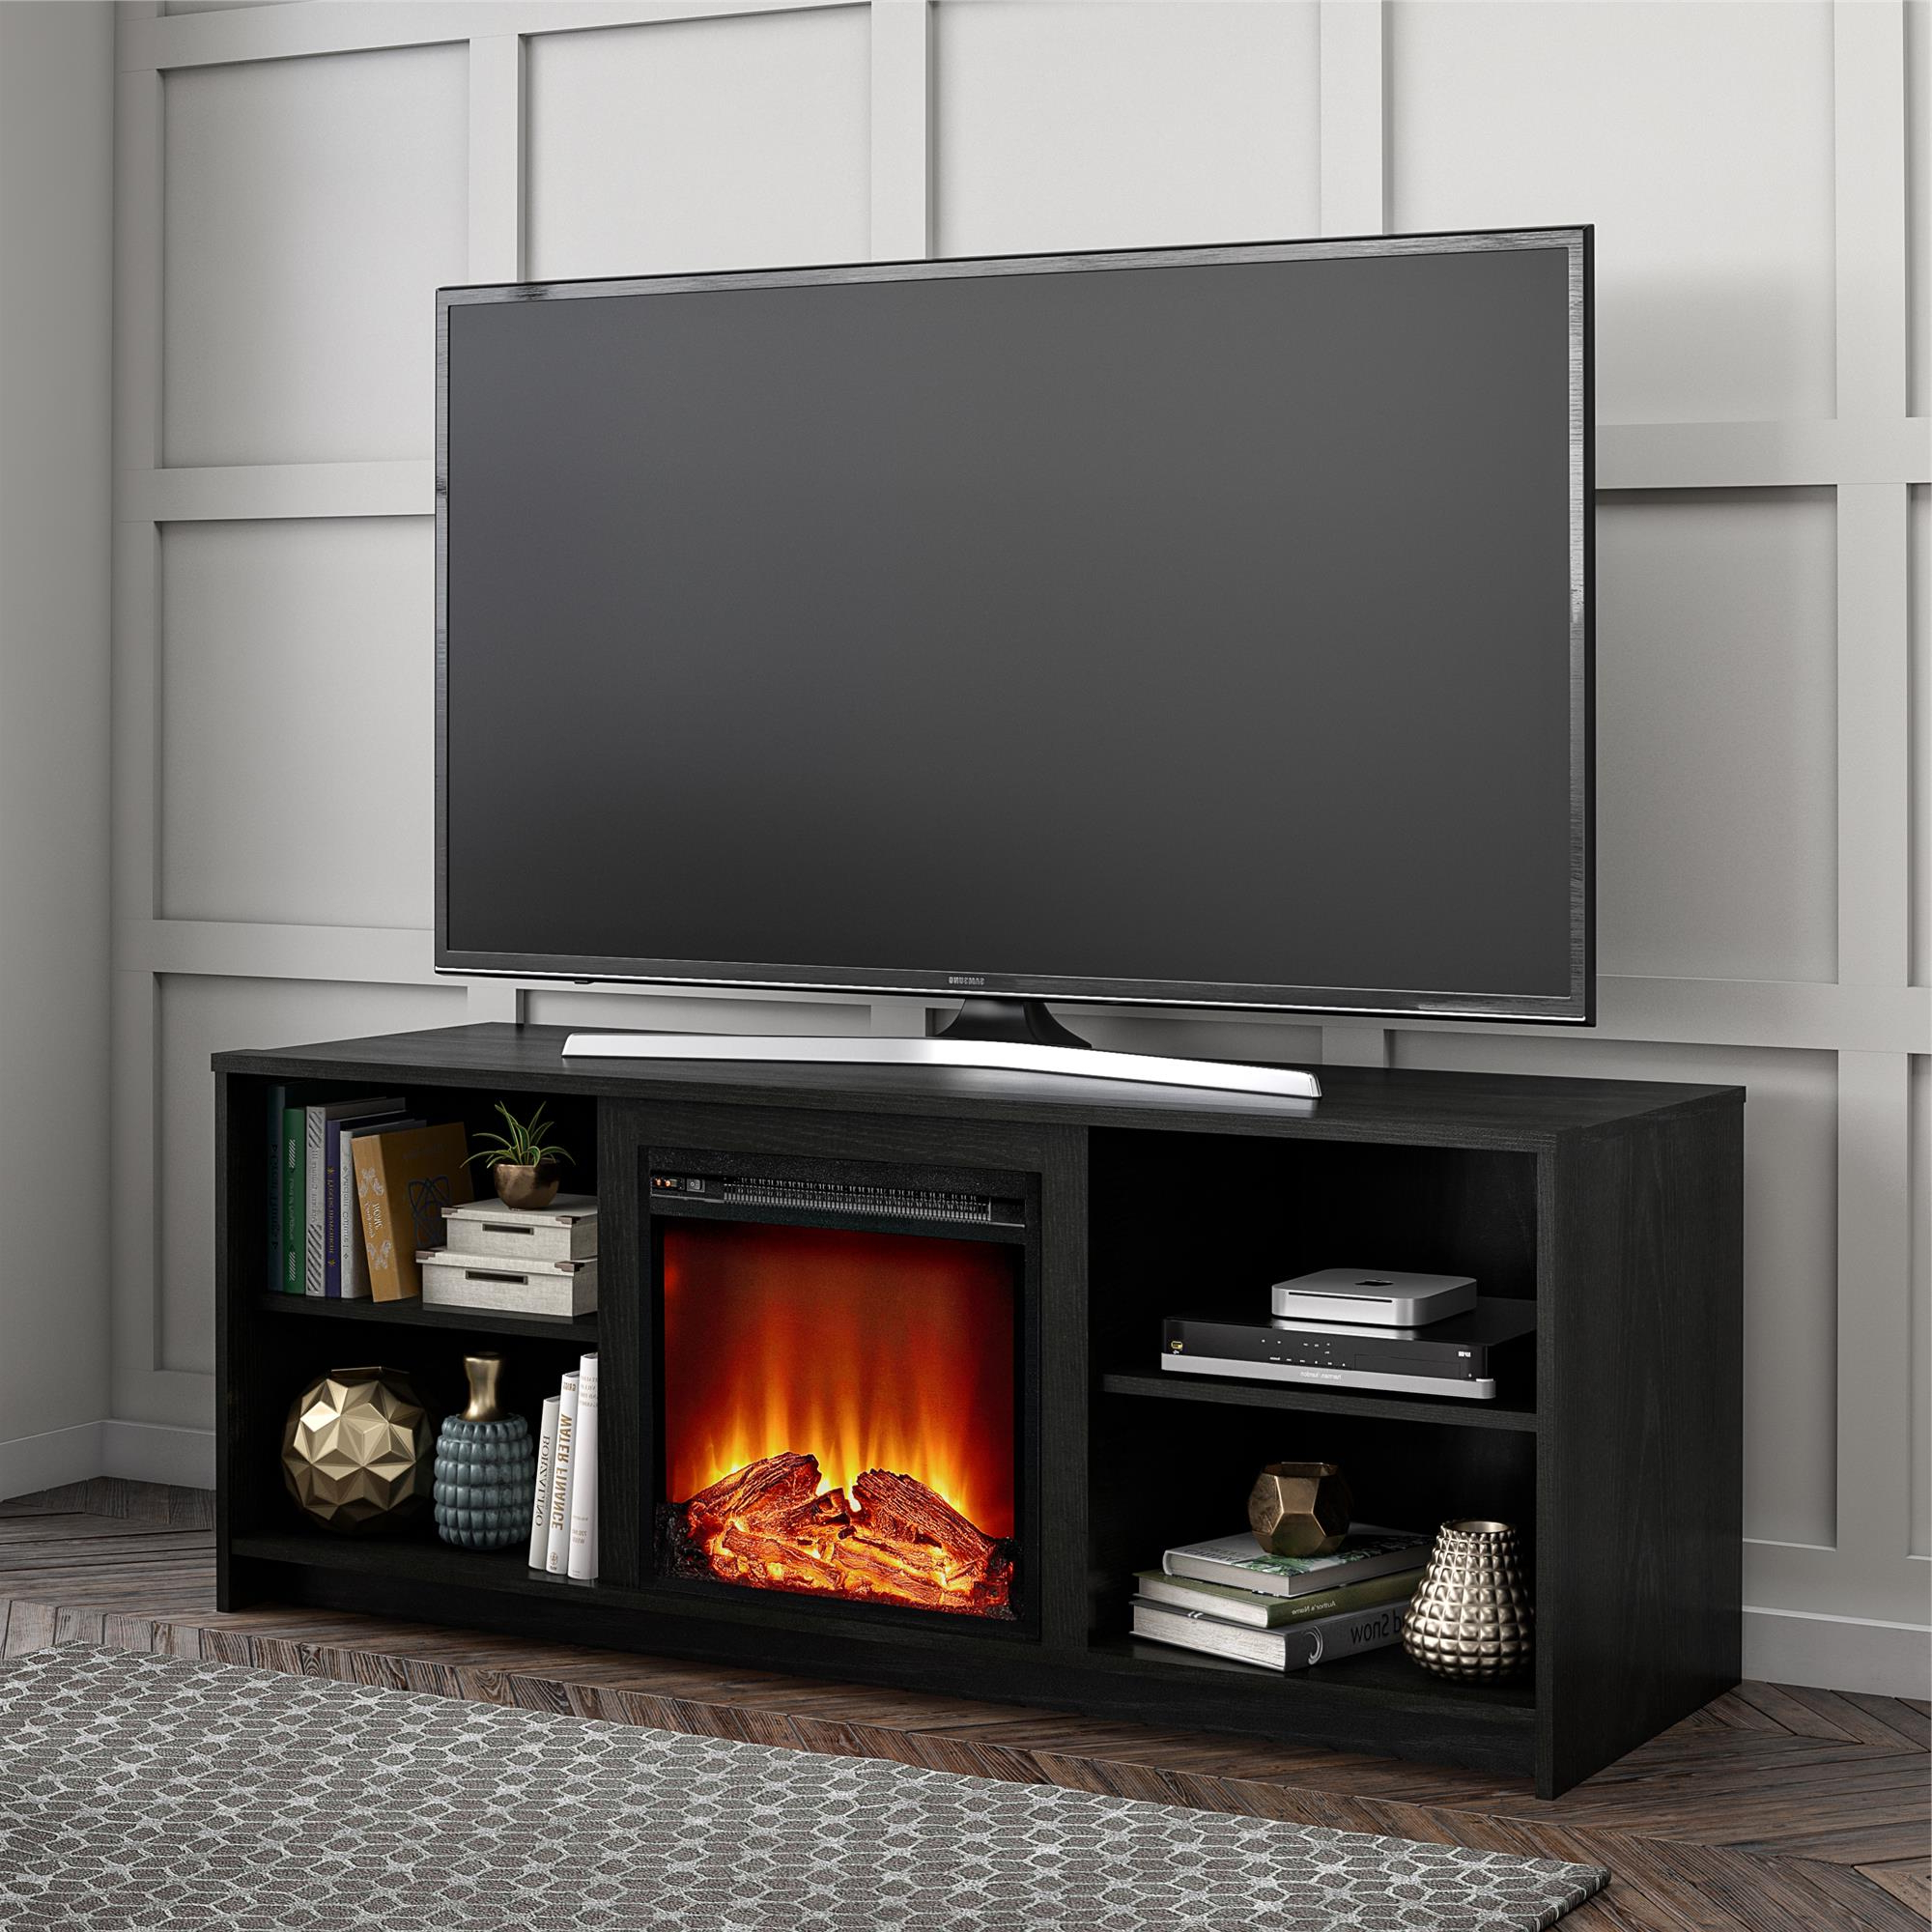 """Most Up To Date Dallas Tv Stands For Tvs Up To 65"""" For Mainstays Fireplace Tv Stand For Tvs Up To 65"""", Black Oak (View 2 of 20)"""